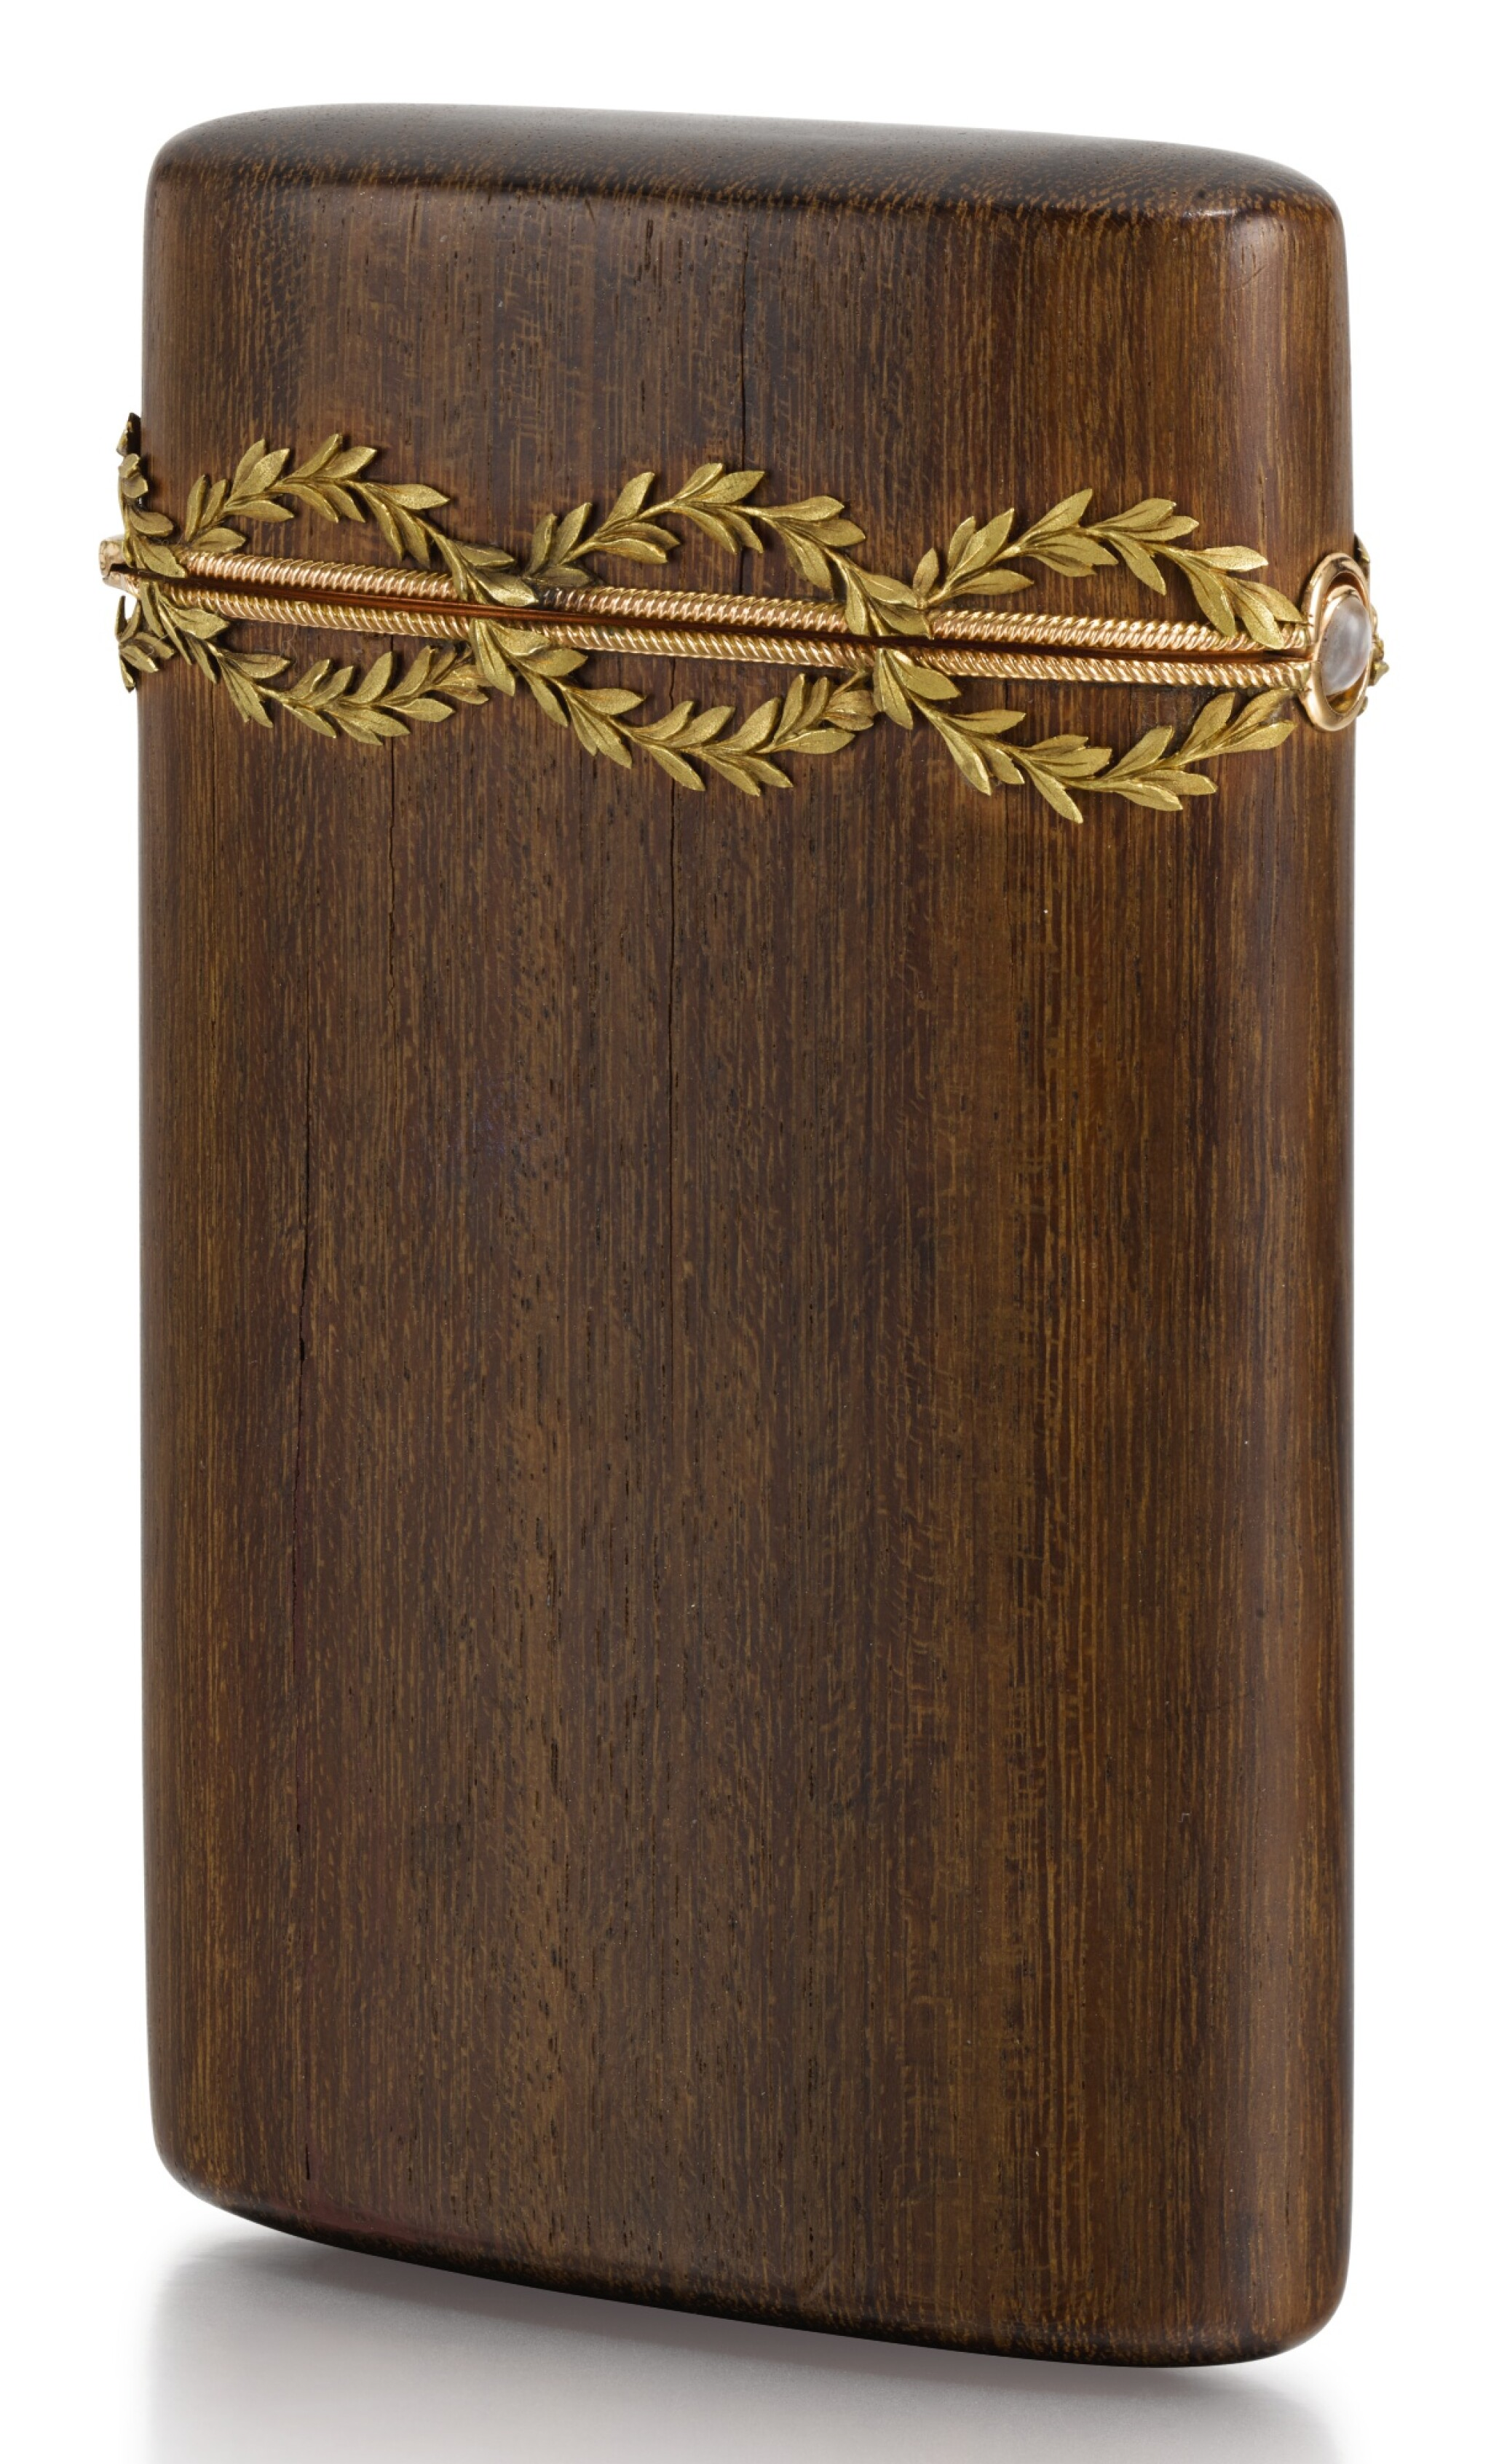 View full screen - View 1 of Lot 310. A FABERGÉ VARICOLOURED GOLD-MOUNTED PALISANDER ETUI, WORKMASTER HJALMAR ARMFELDT, 1899-1908.